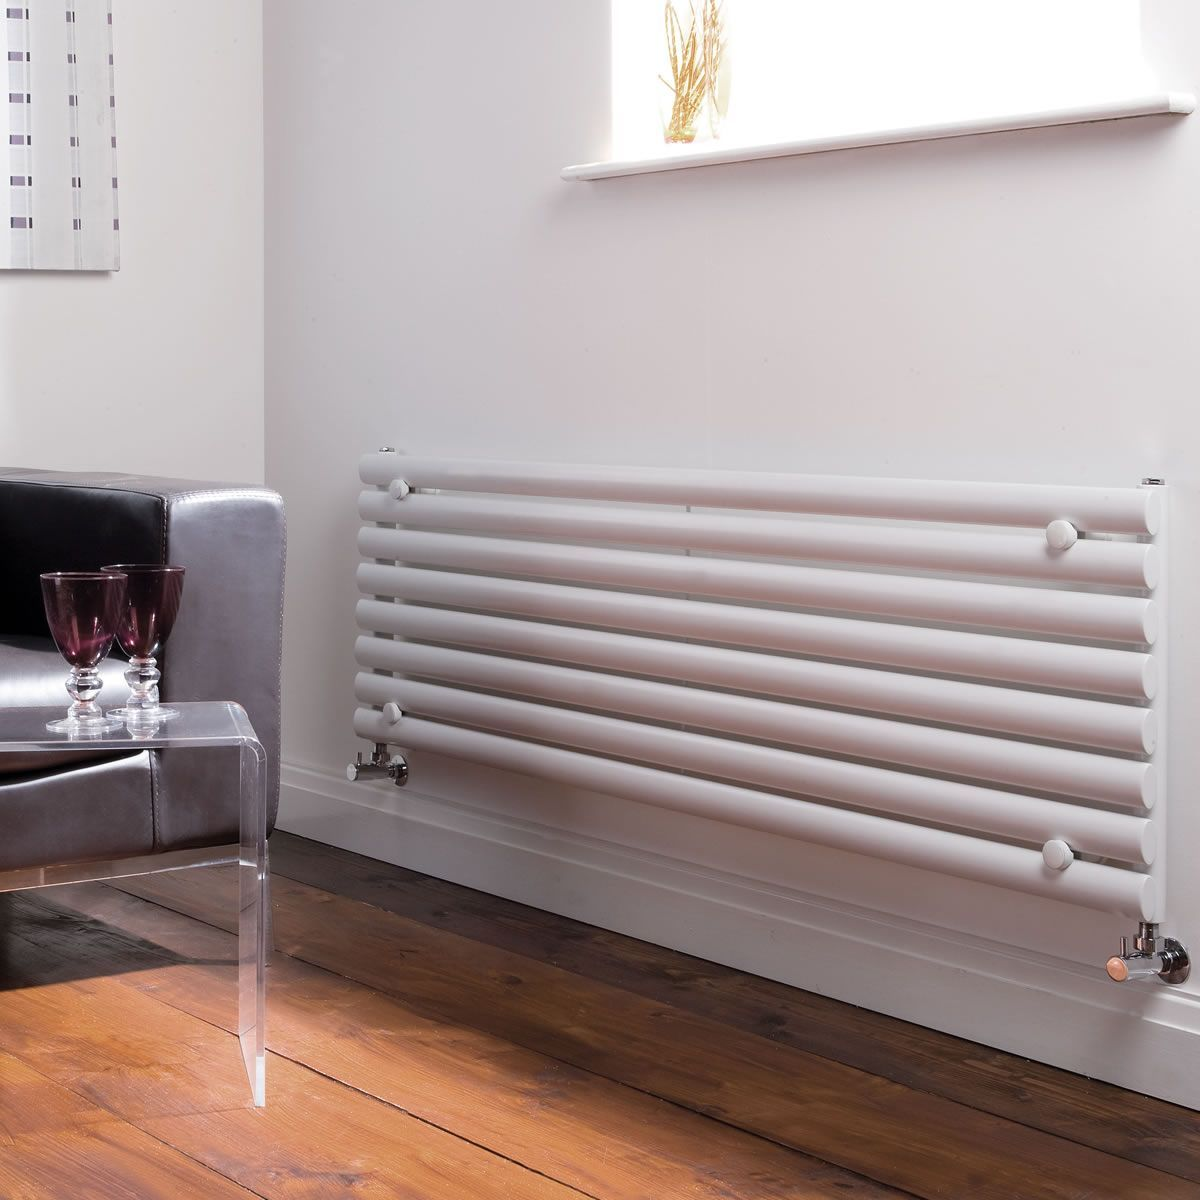 Horizontal radiator